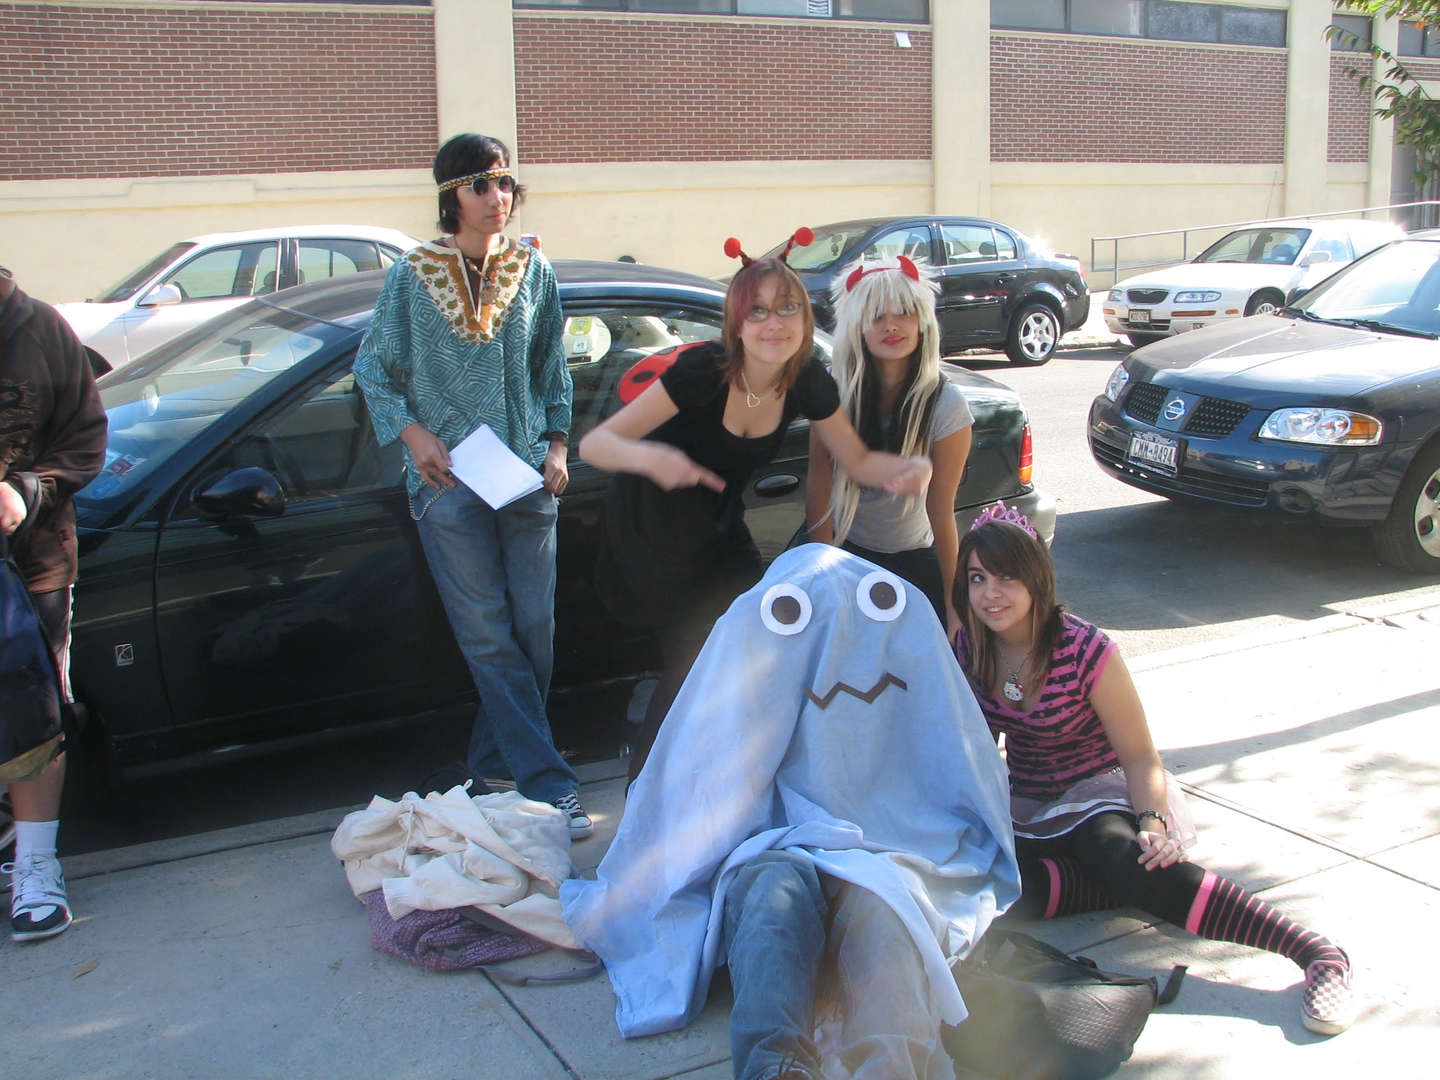 A group of students with various costumes sitting on the ground and leaning against a car